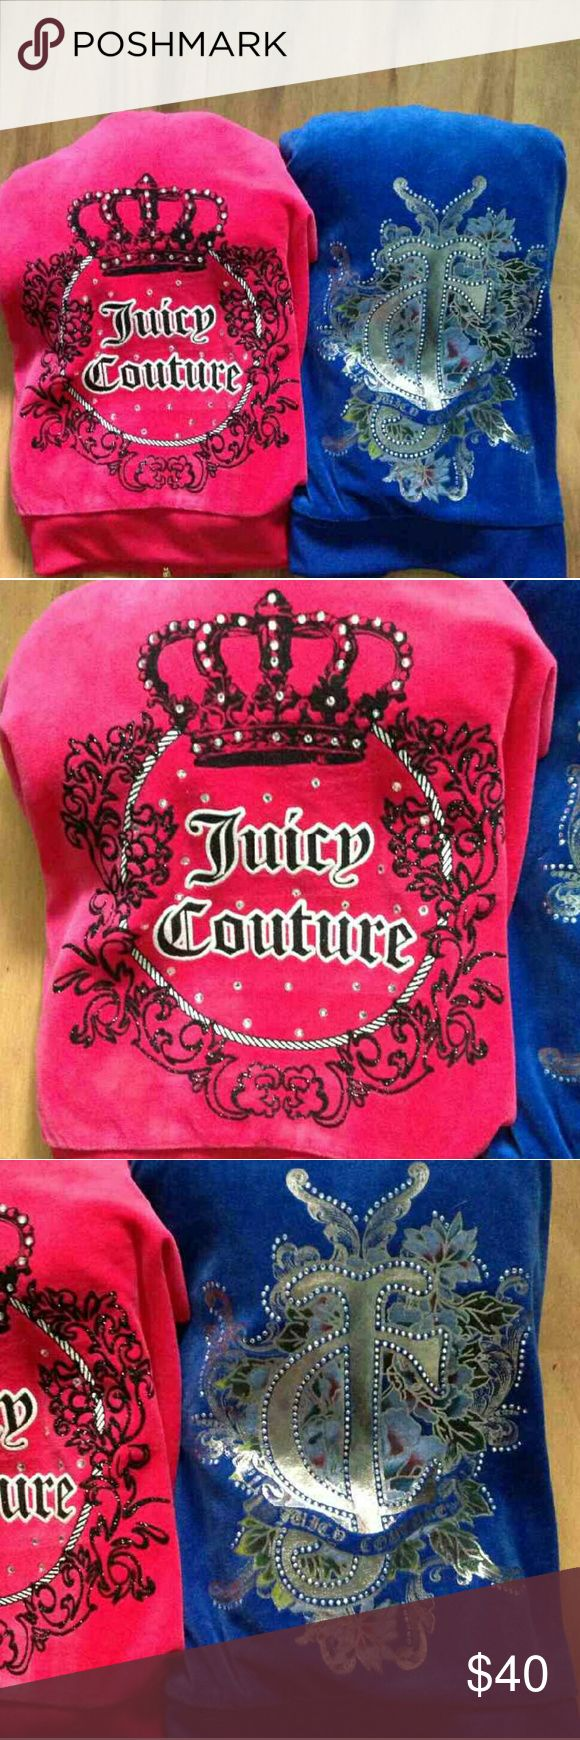 Nwot Juicy Couture Velour Track Jackets *SOLD* I actually bought these from someone else on here and they ended up being too big for me cuz I'm a size small and there both a size medium,they are both nwot , that's how I purchased them,I didn't wear them I only tried them on,so I won't wash them when I send them , I'll send them as they came too me , there both beautiful colors and there authentic,both size medium,juicy couture pink hoodie,sweater,track jacket, and juicy couture blue…